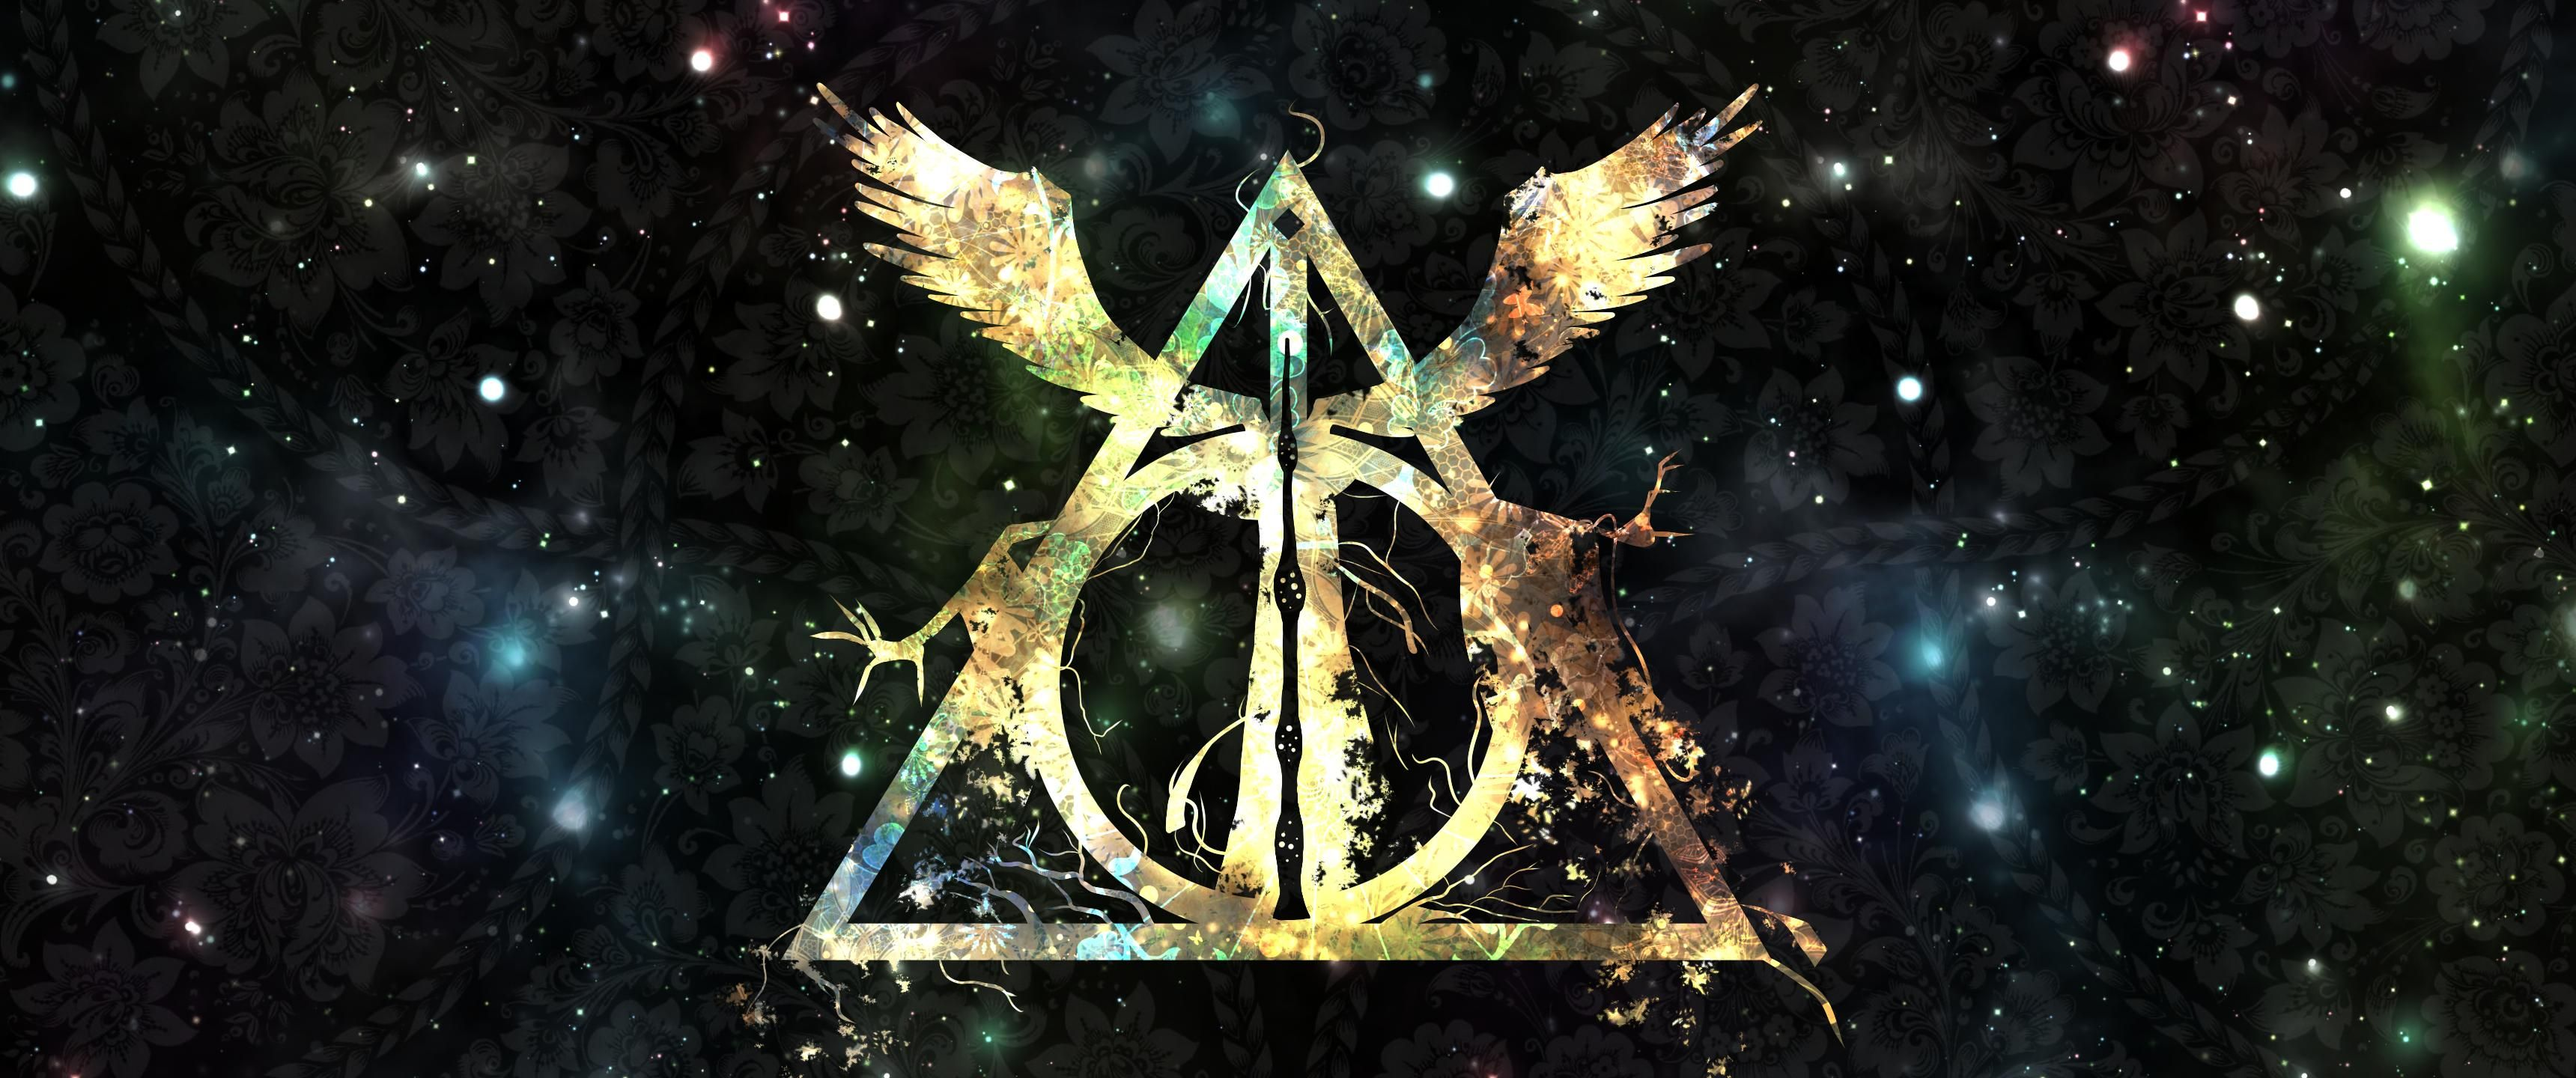 Deathly Hallows Wallpaper Free Download Papeis De Parede Para Download Harry Potter Filme Tela De Notebook